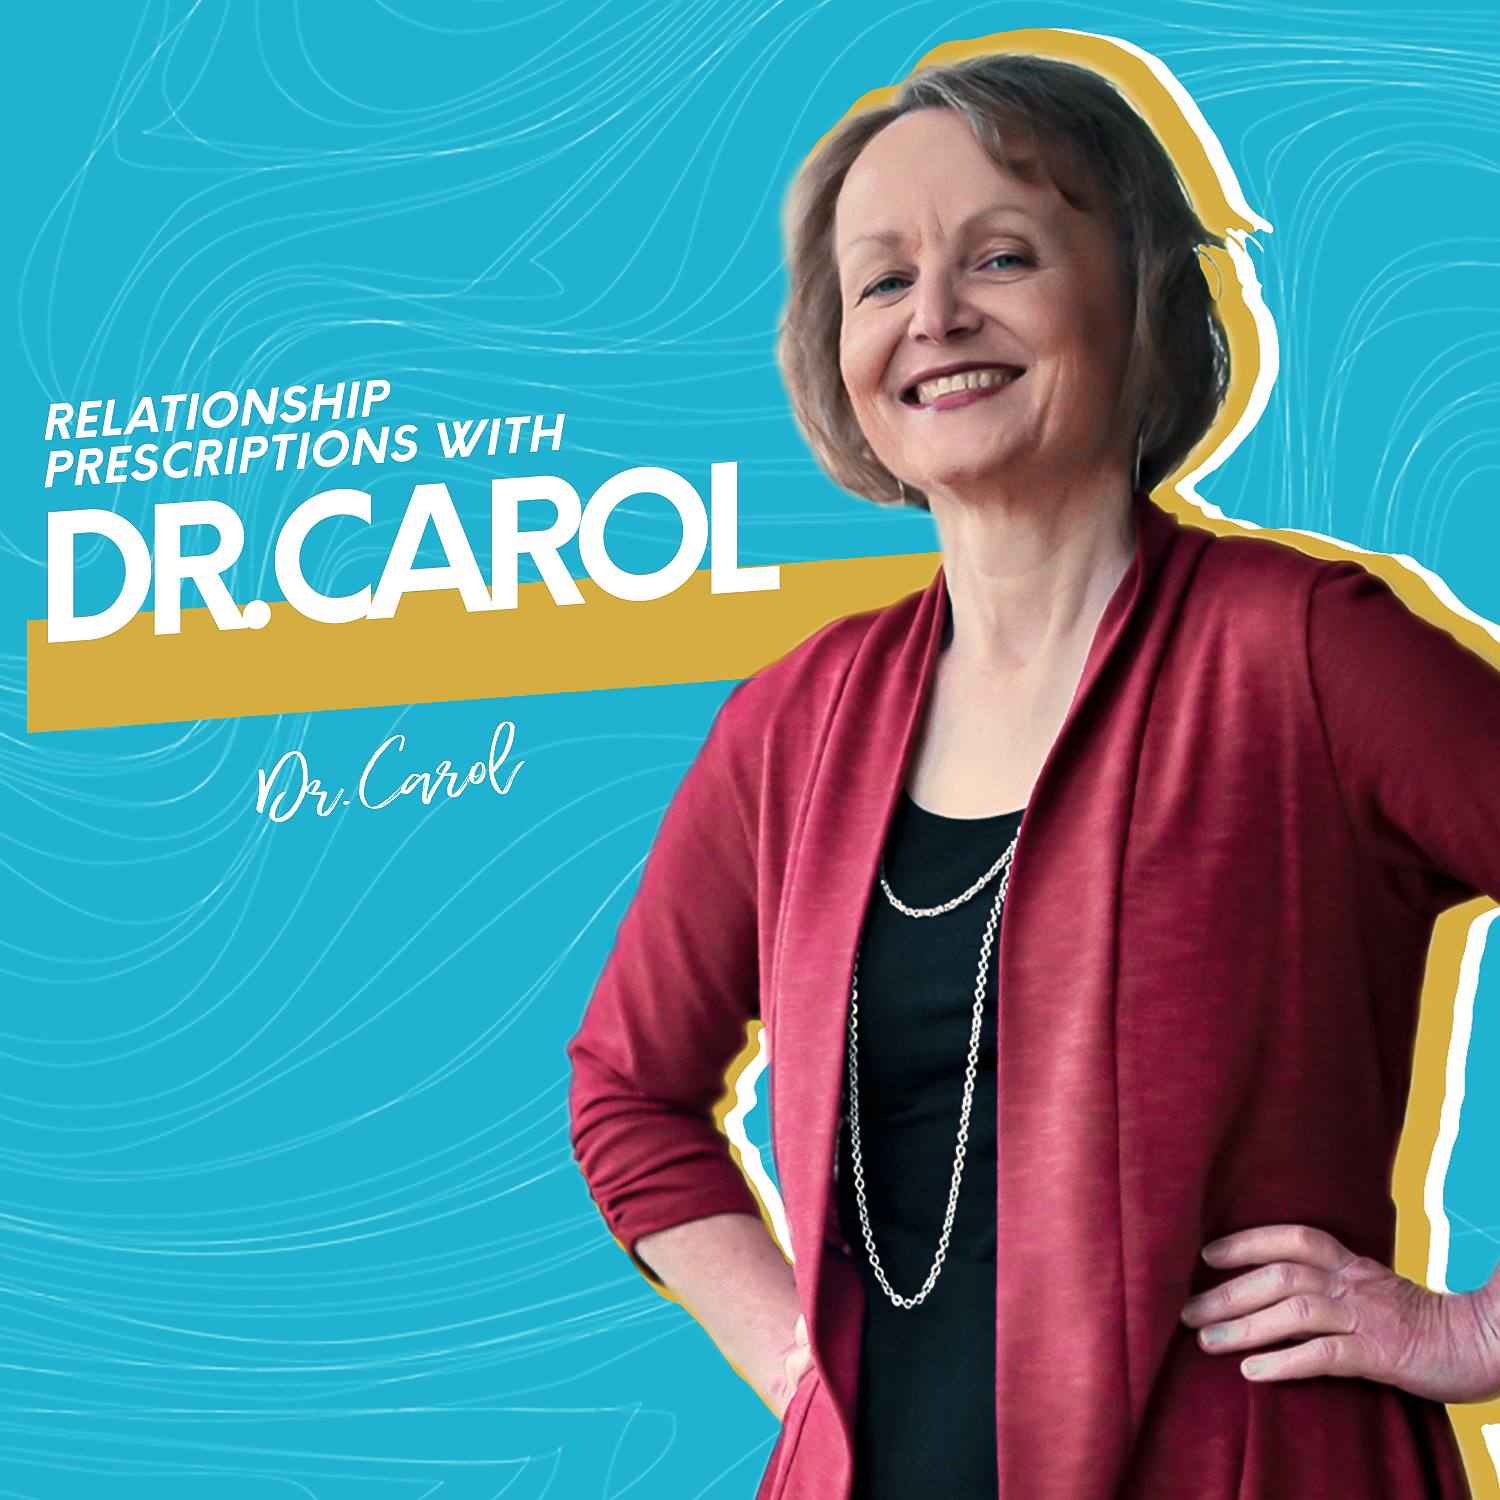 Relationship Prescriptions with Dr. Carol - Broken Intimacy:  How to Restore a Marriage That's Fractured